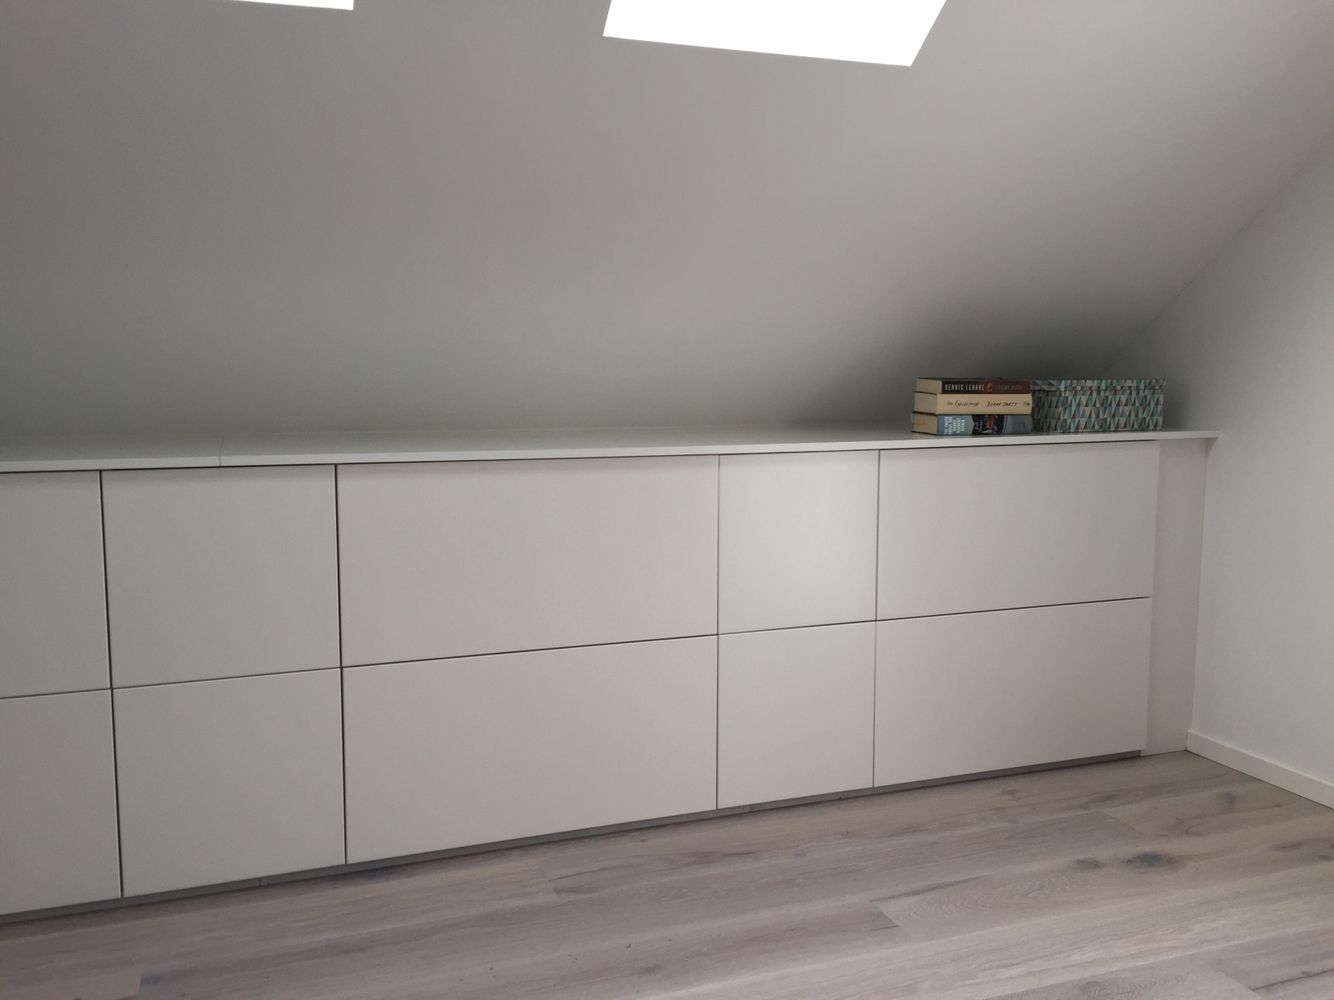 Loft bedroom storage ideas  Ikea kitchen storage as drawers for clothes etc in out new attic